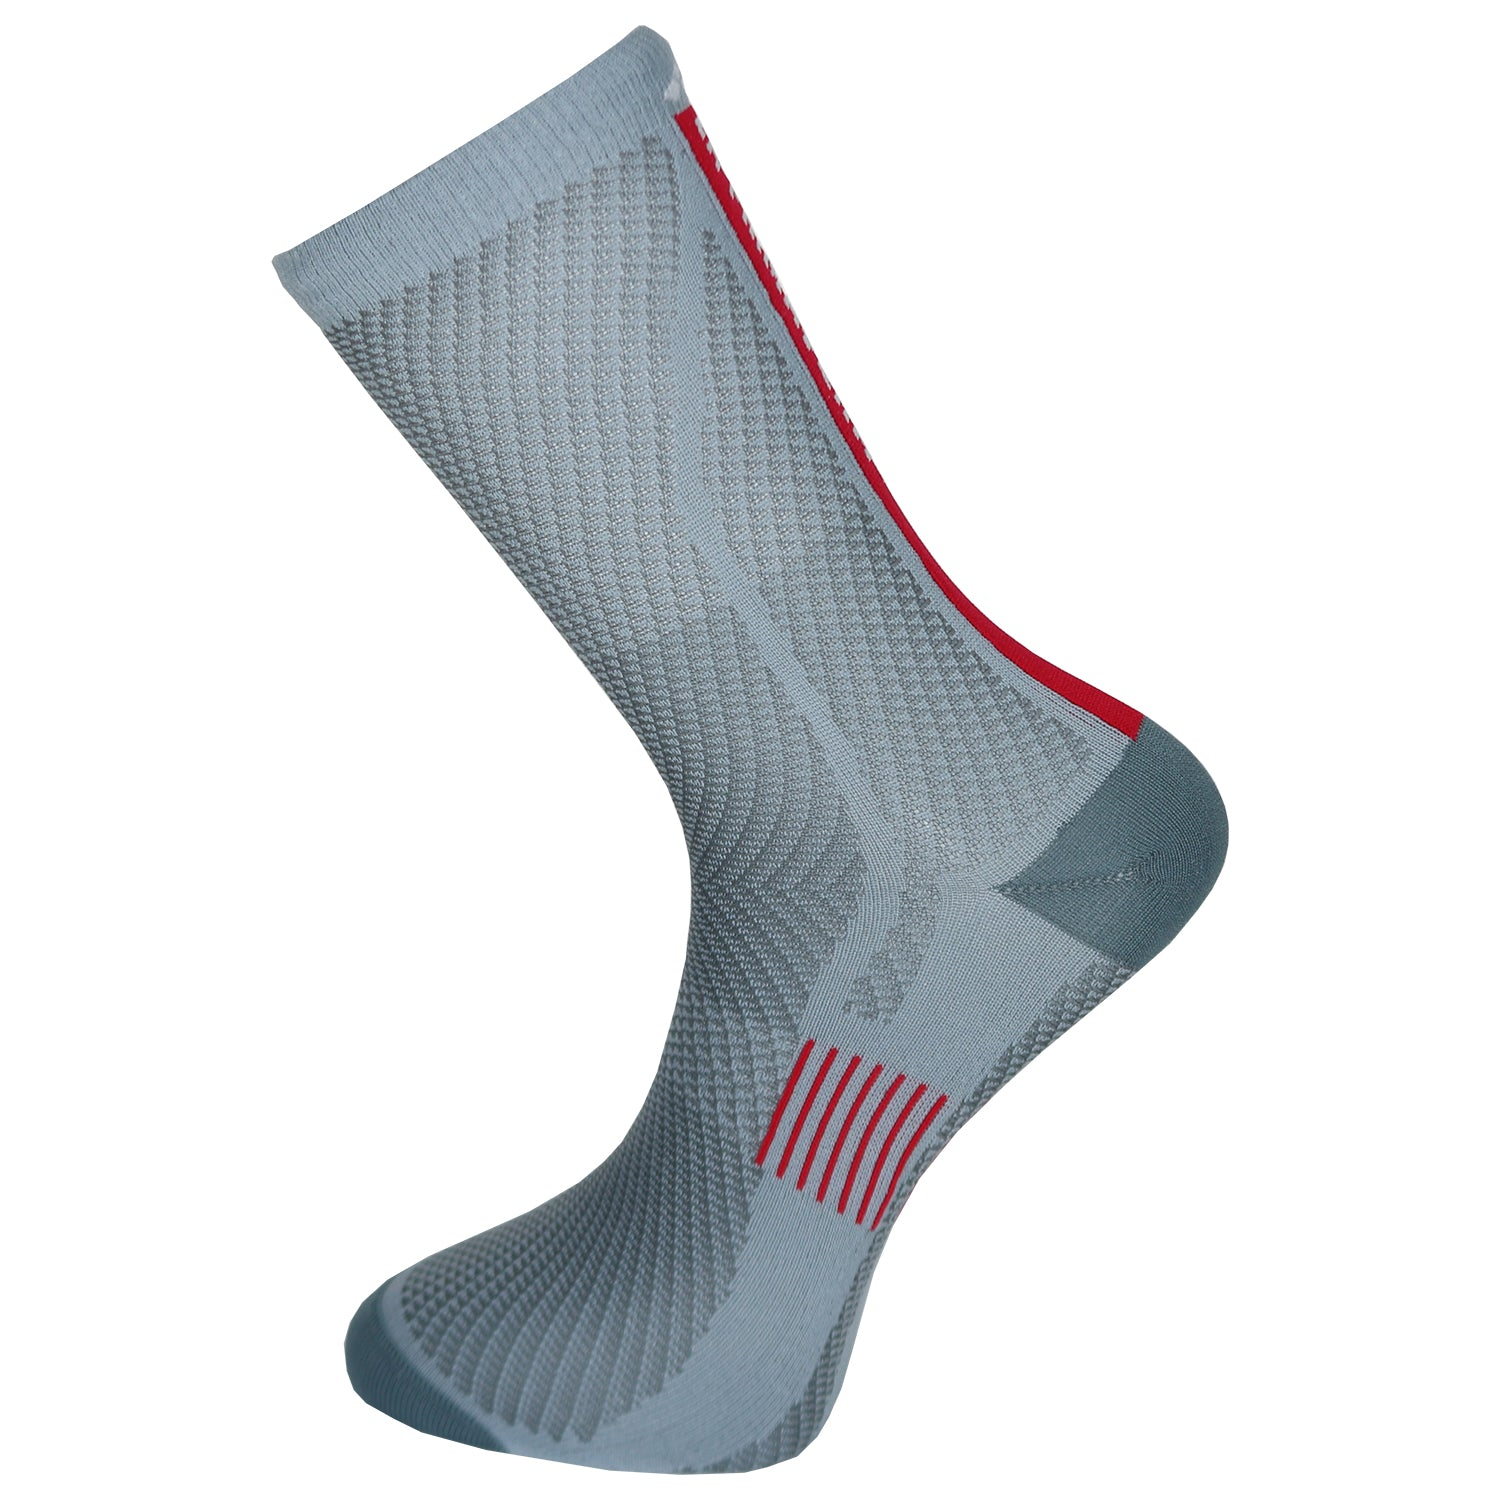 Milan-San Remo Monument Cycling Socks